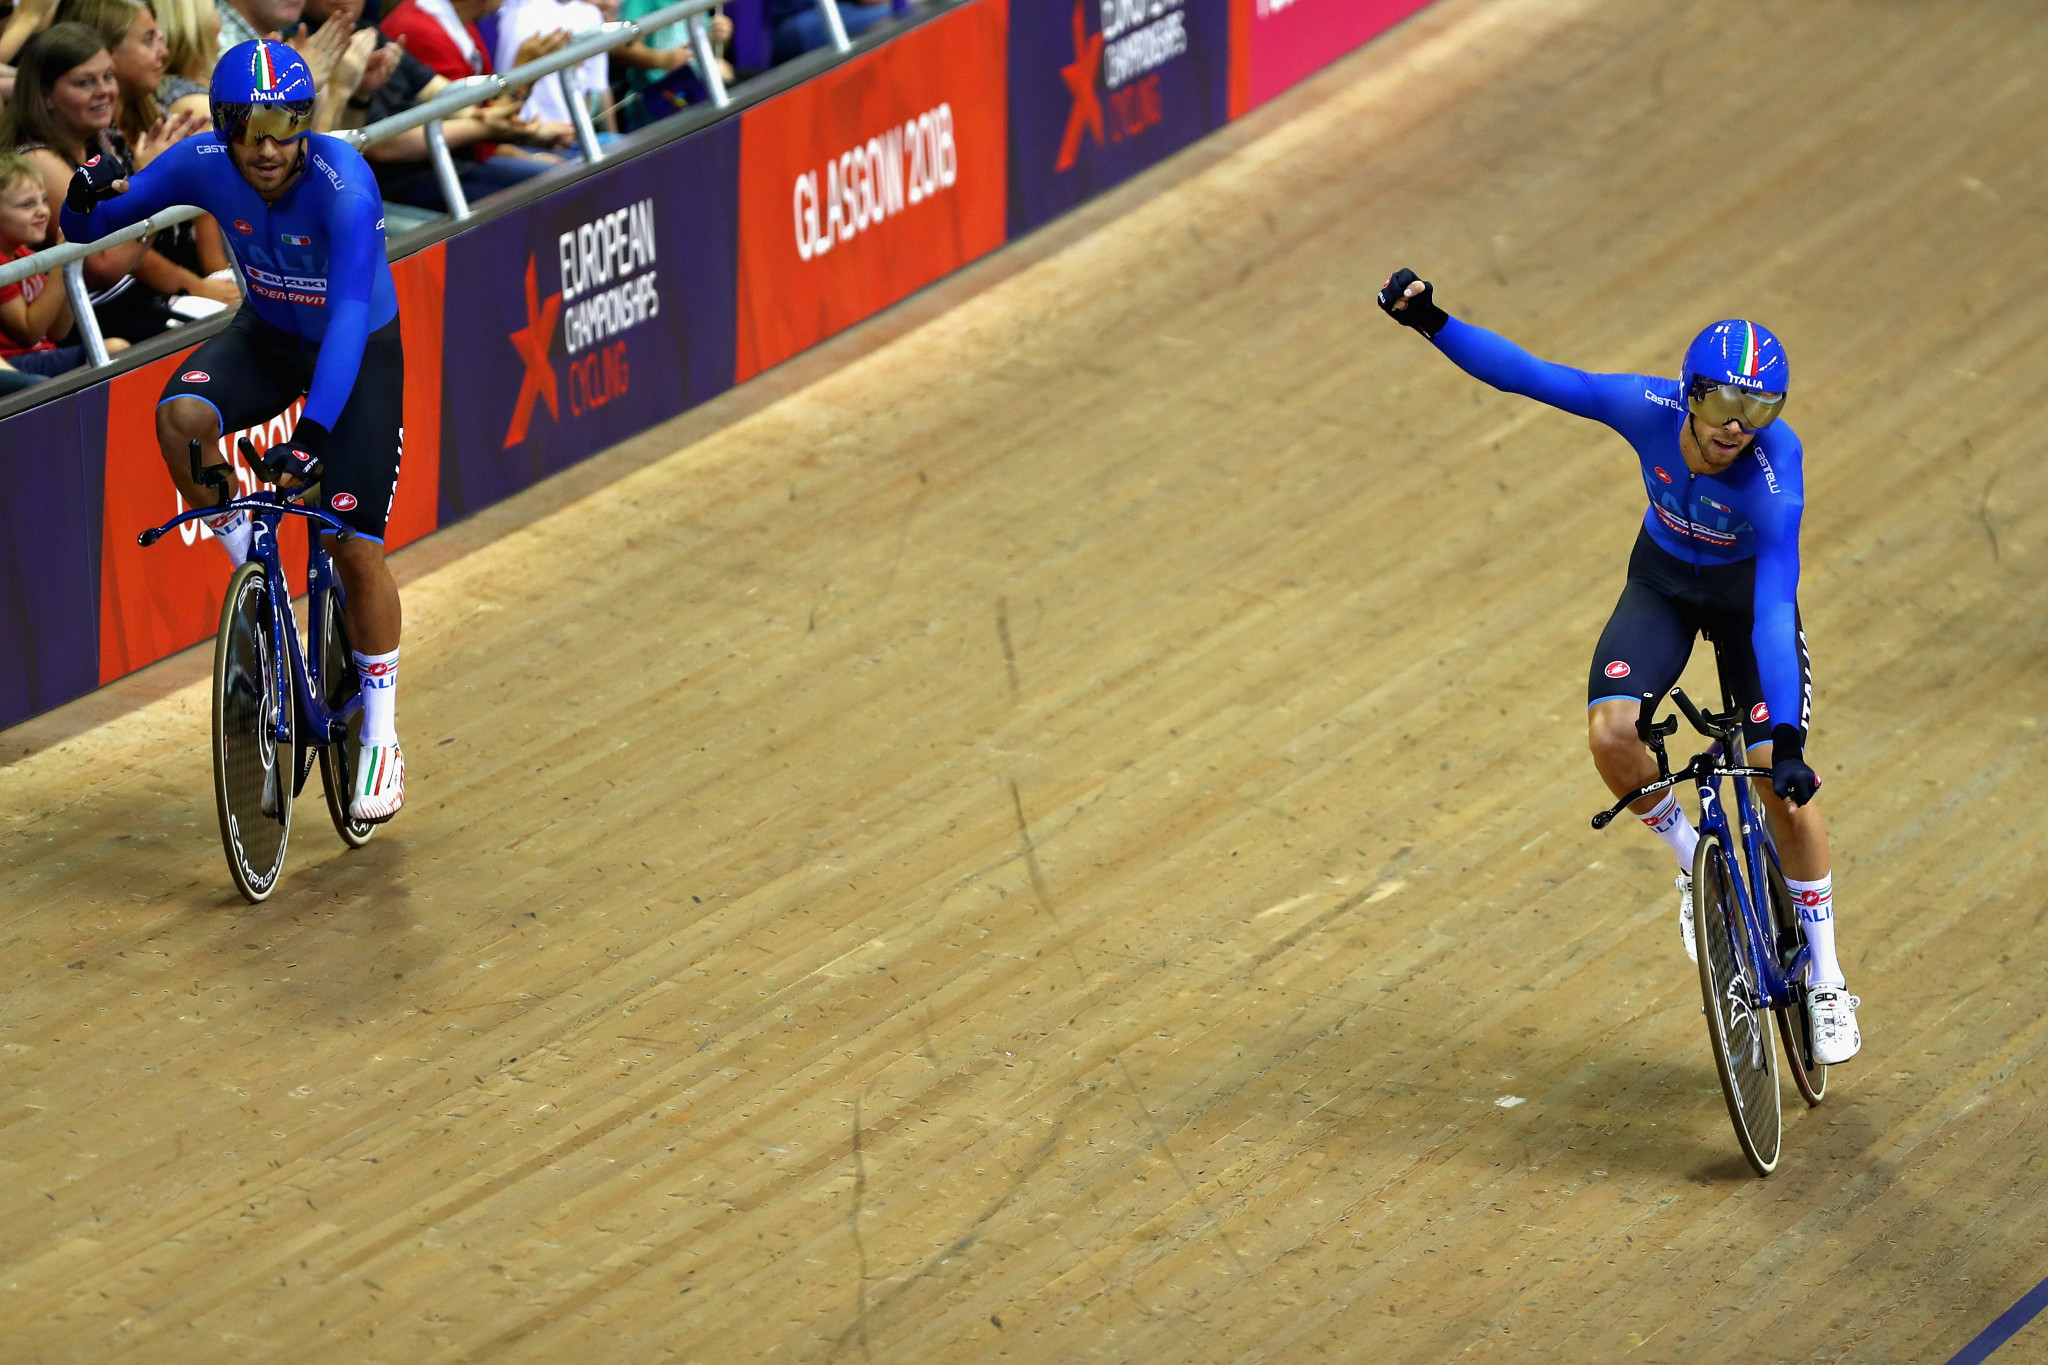 Italy emerged triumphant in the men's event ©Getty Images